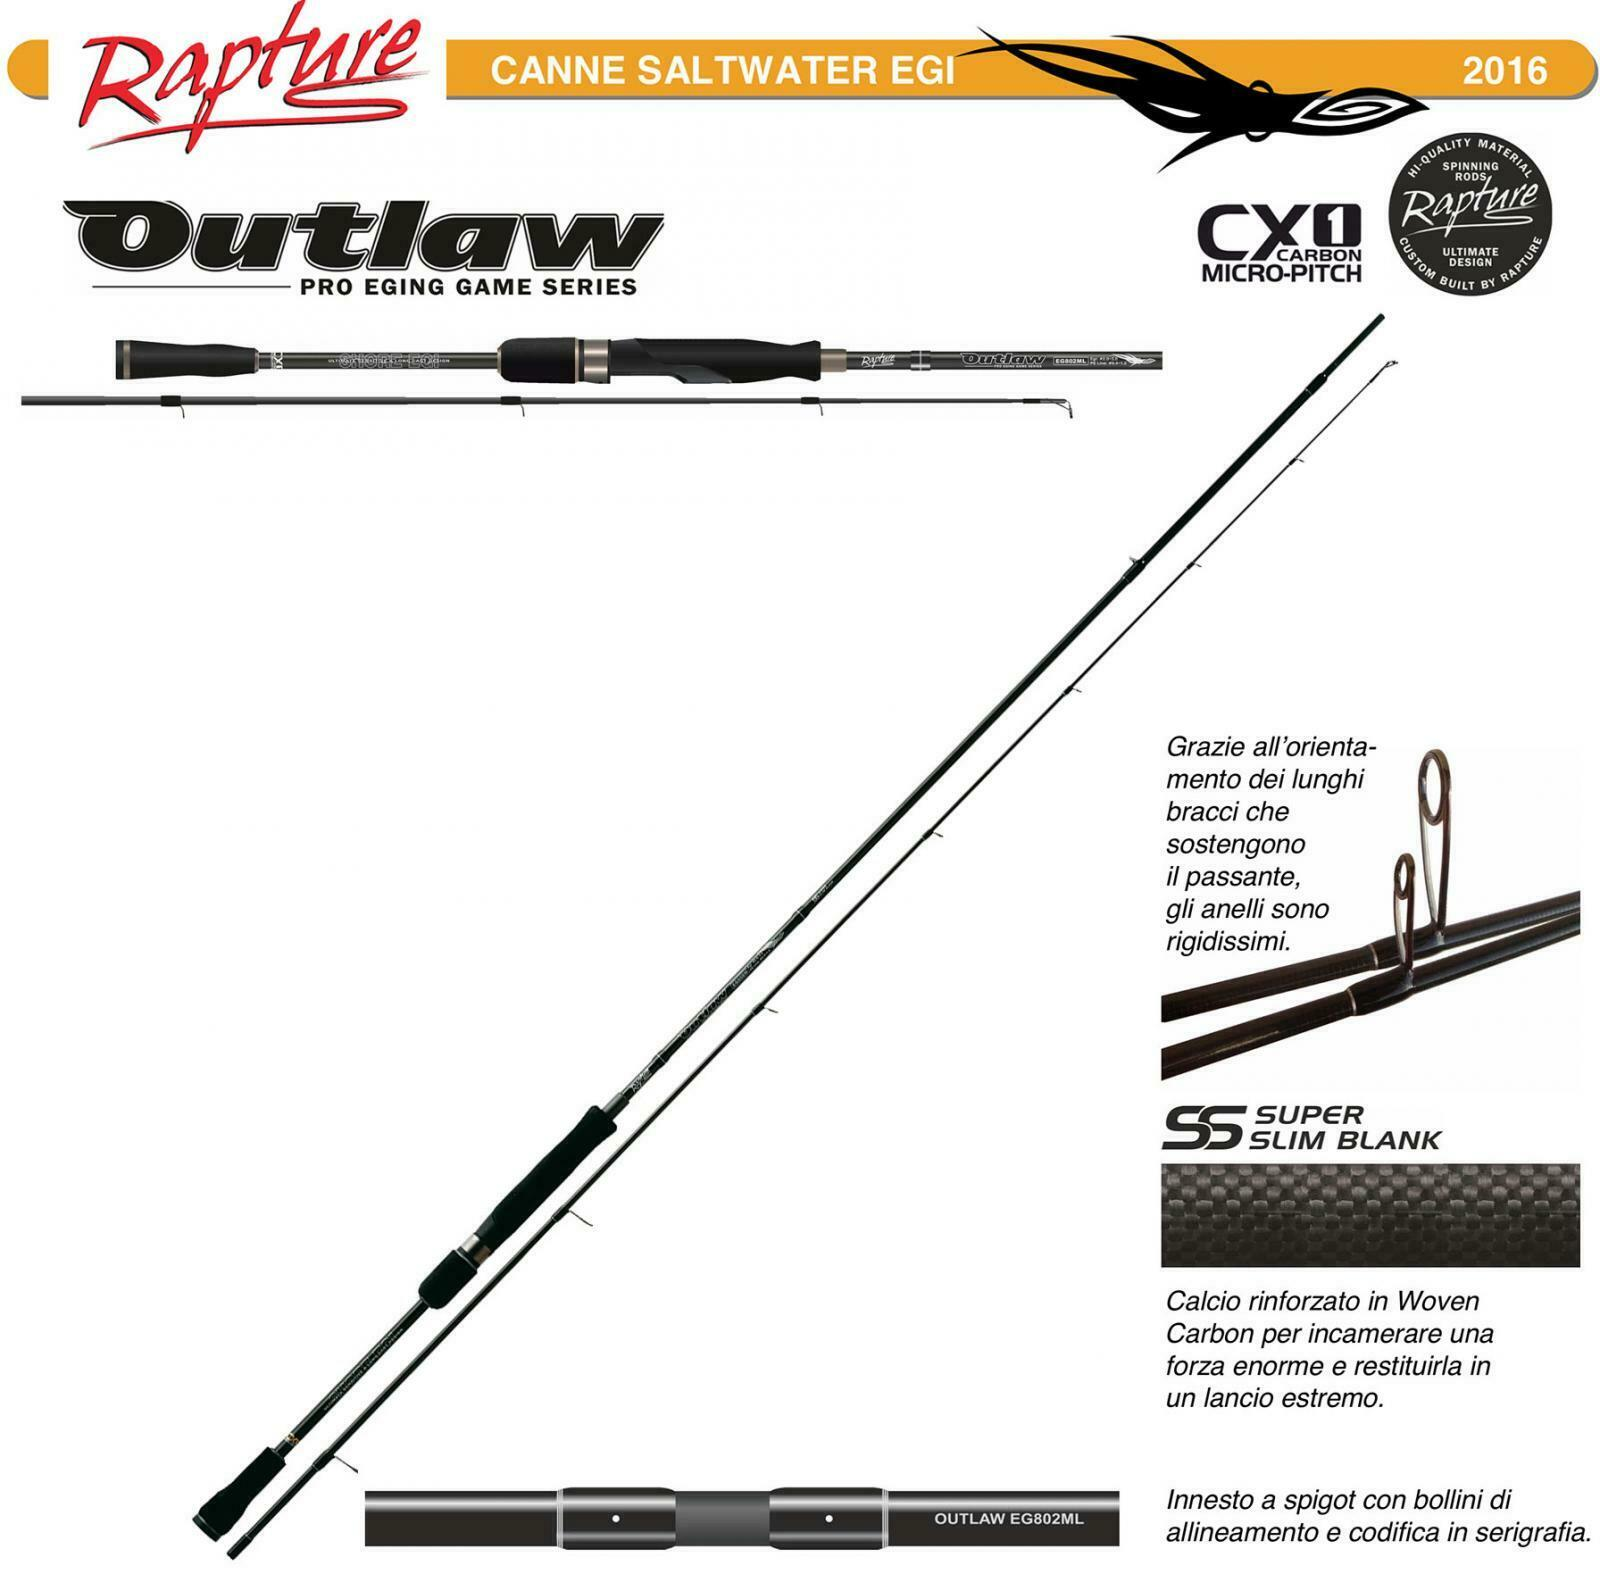 12632300 Canna Eging Spinning 8  Rapture Outlaw CX1 Cochebon Micro Pitch    FEU